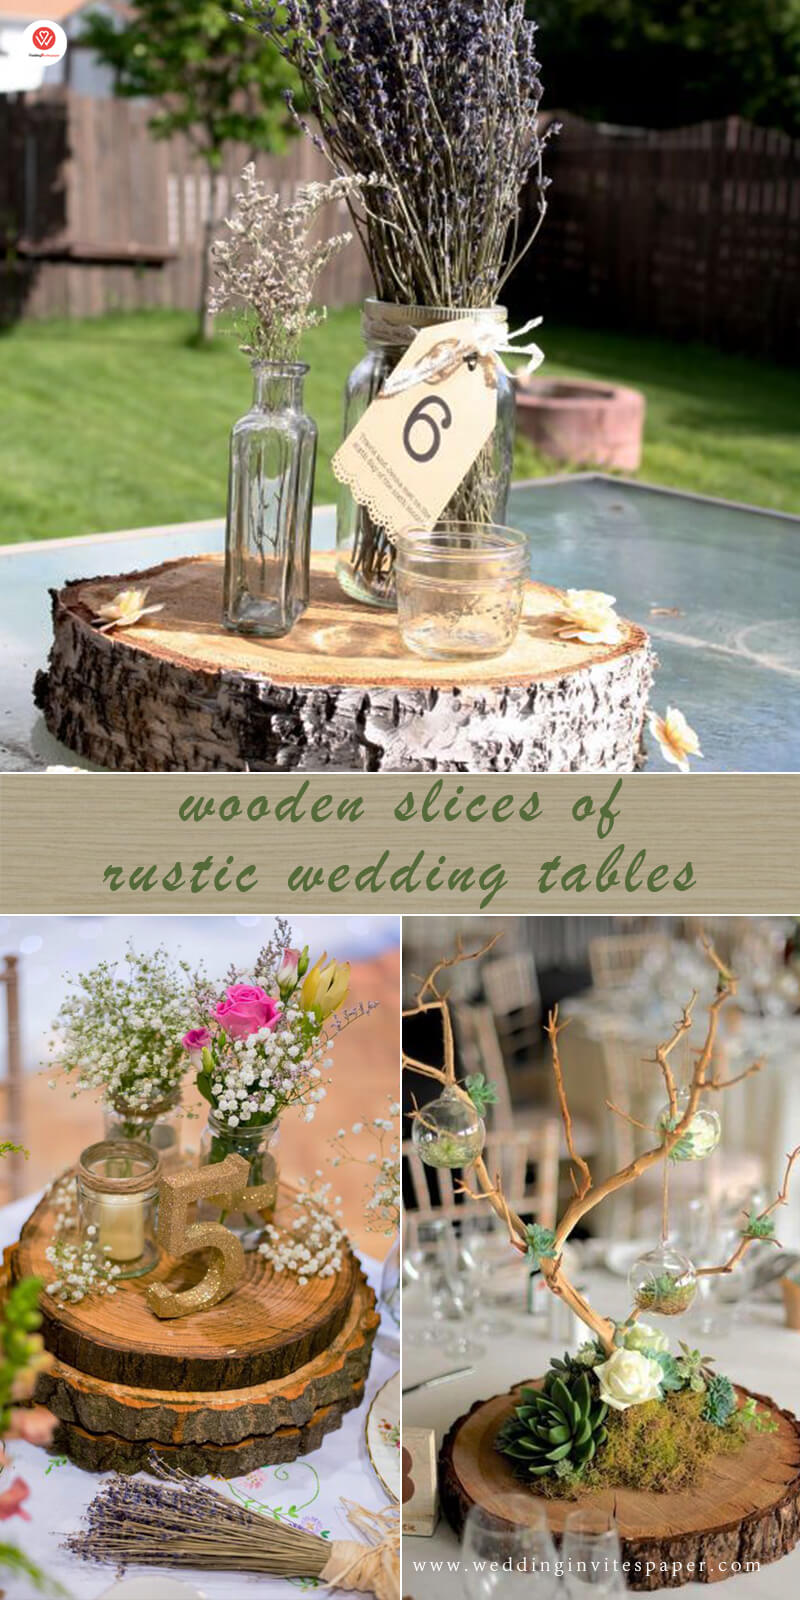 22 wooden slices of rustic wedding tables.jpg